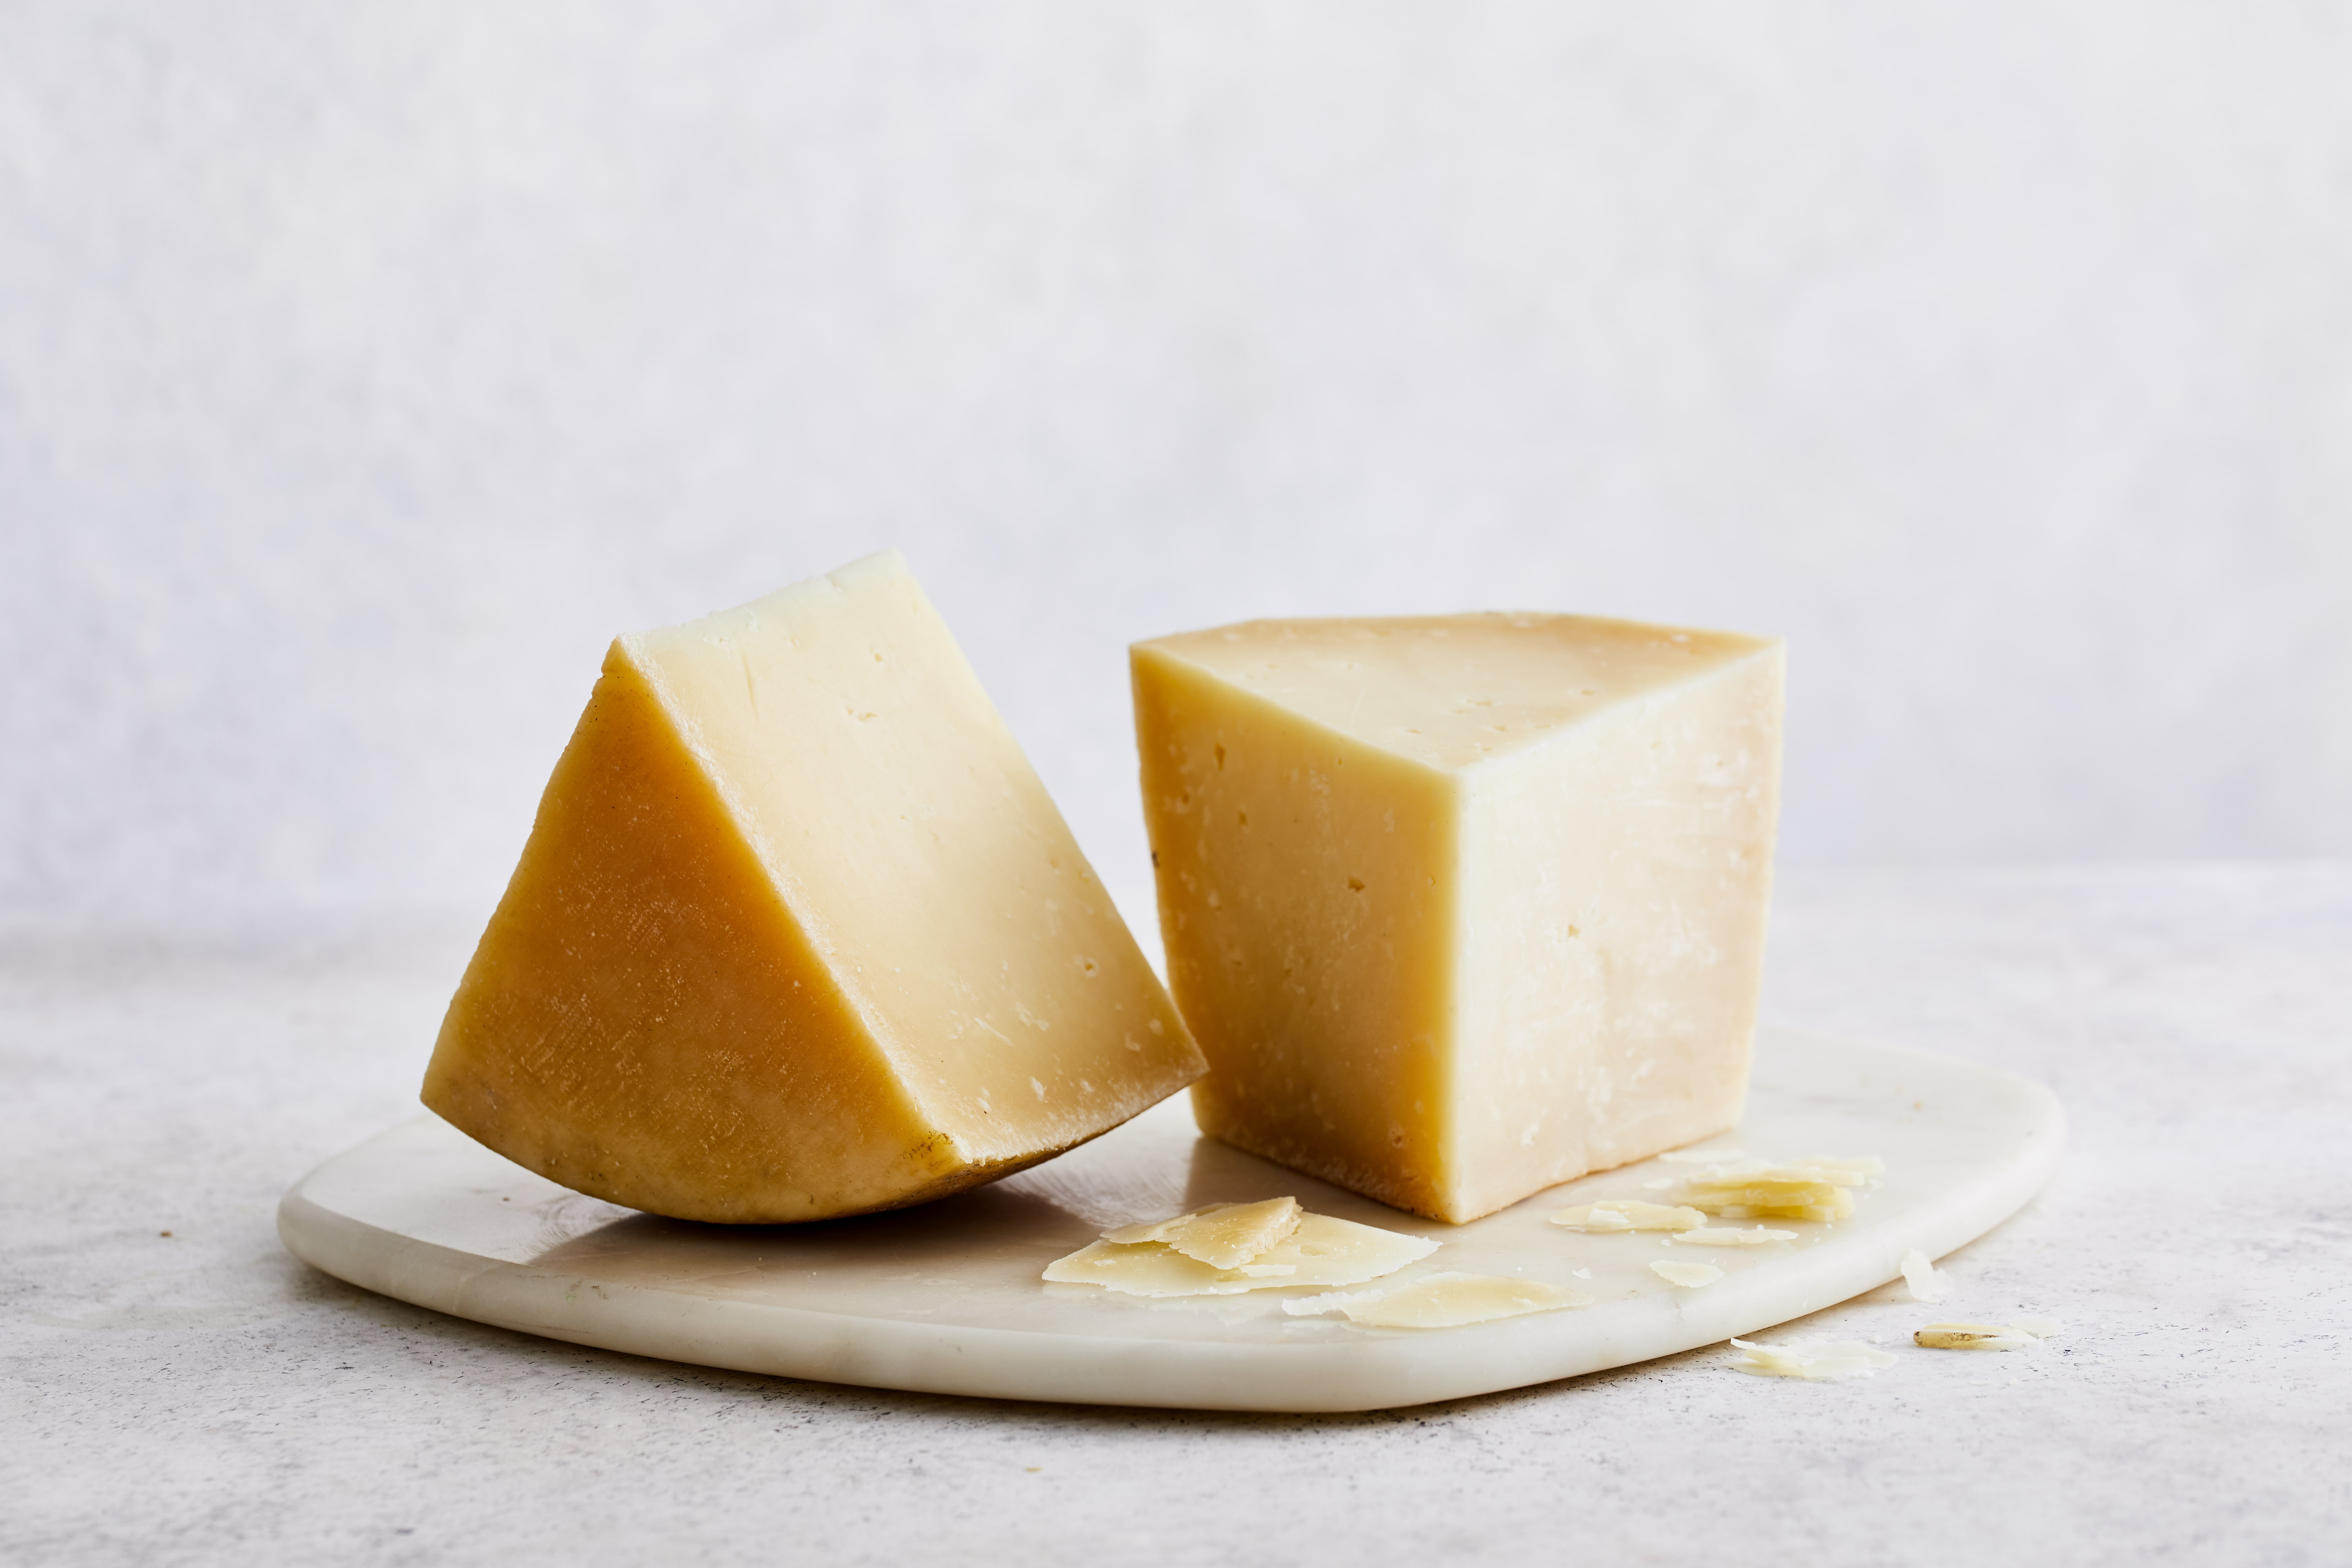 bordbia_cheese_1192007744-min.jpg